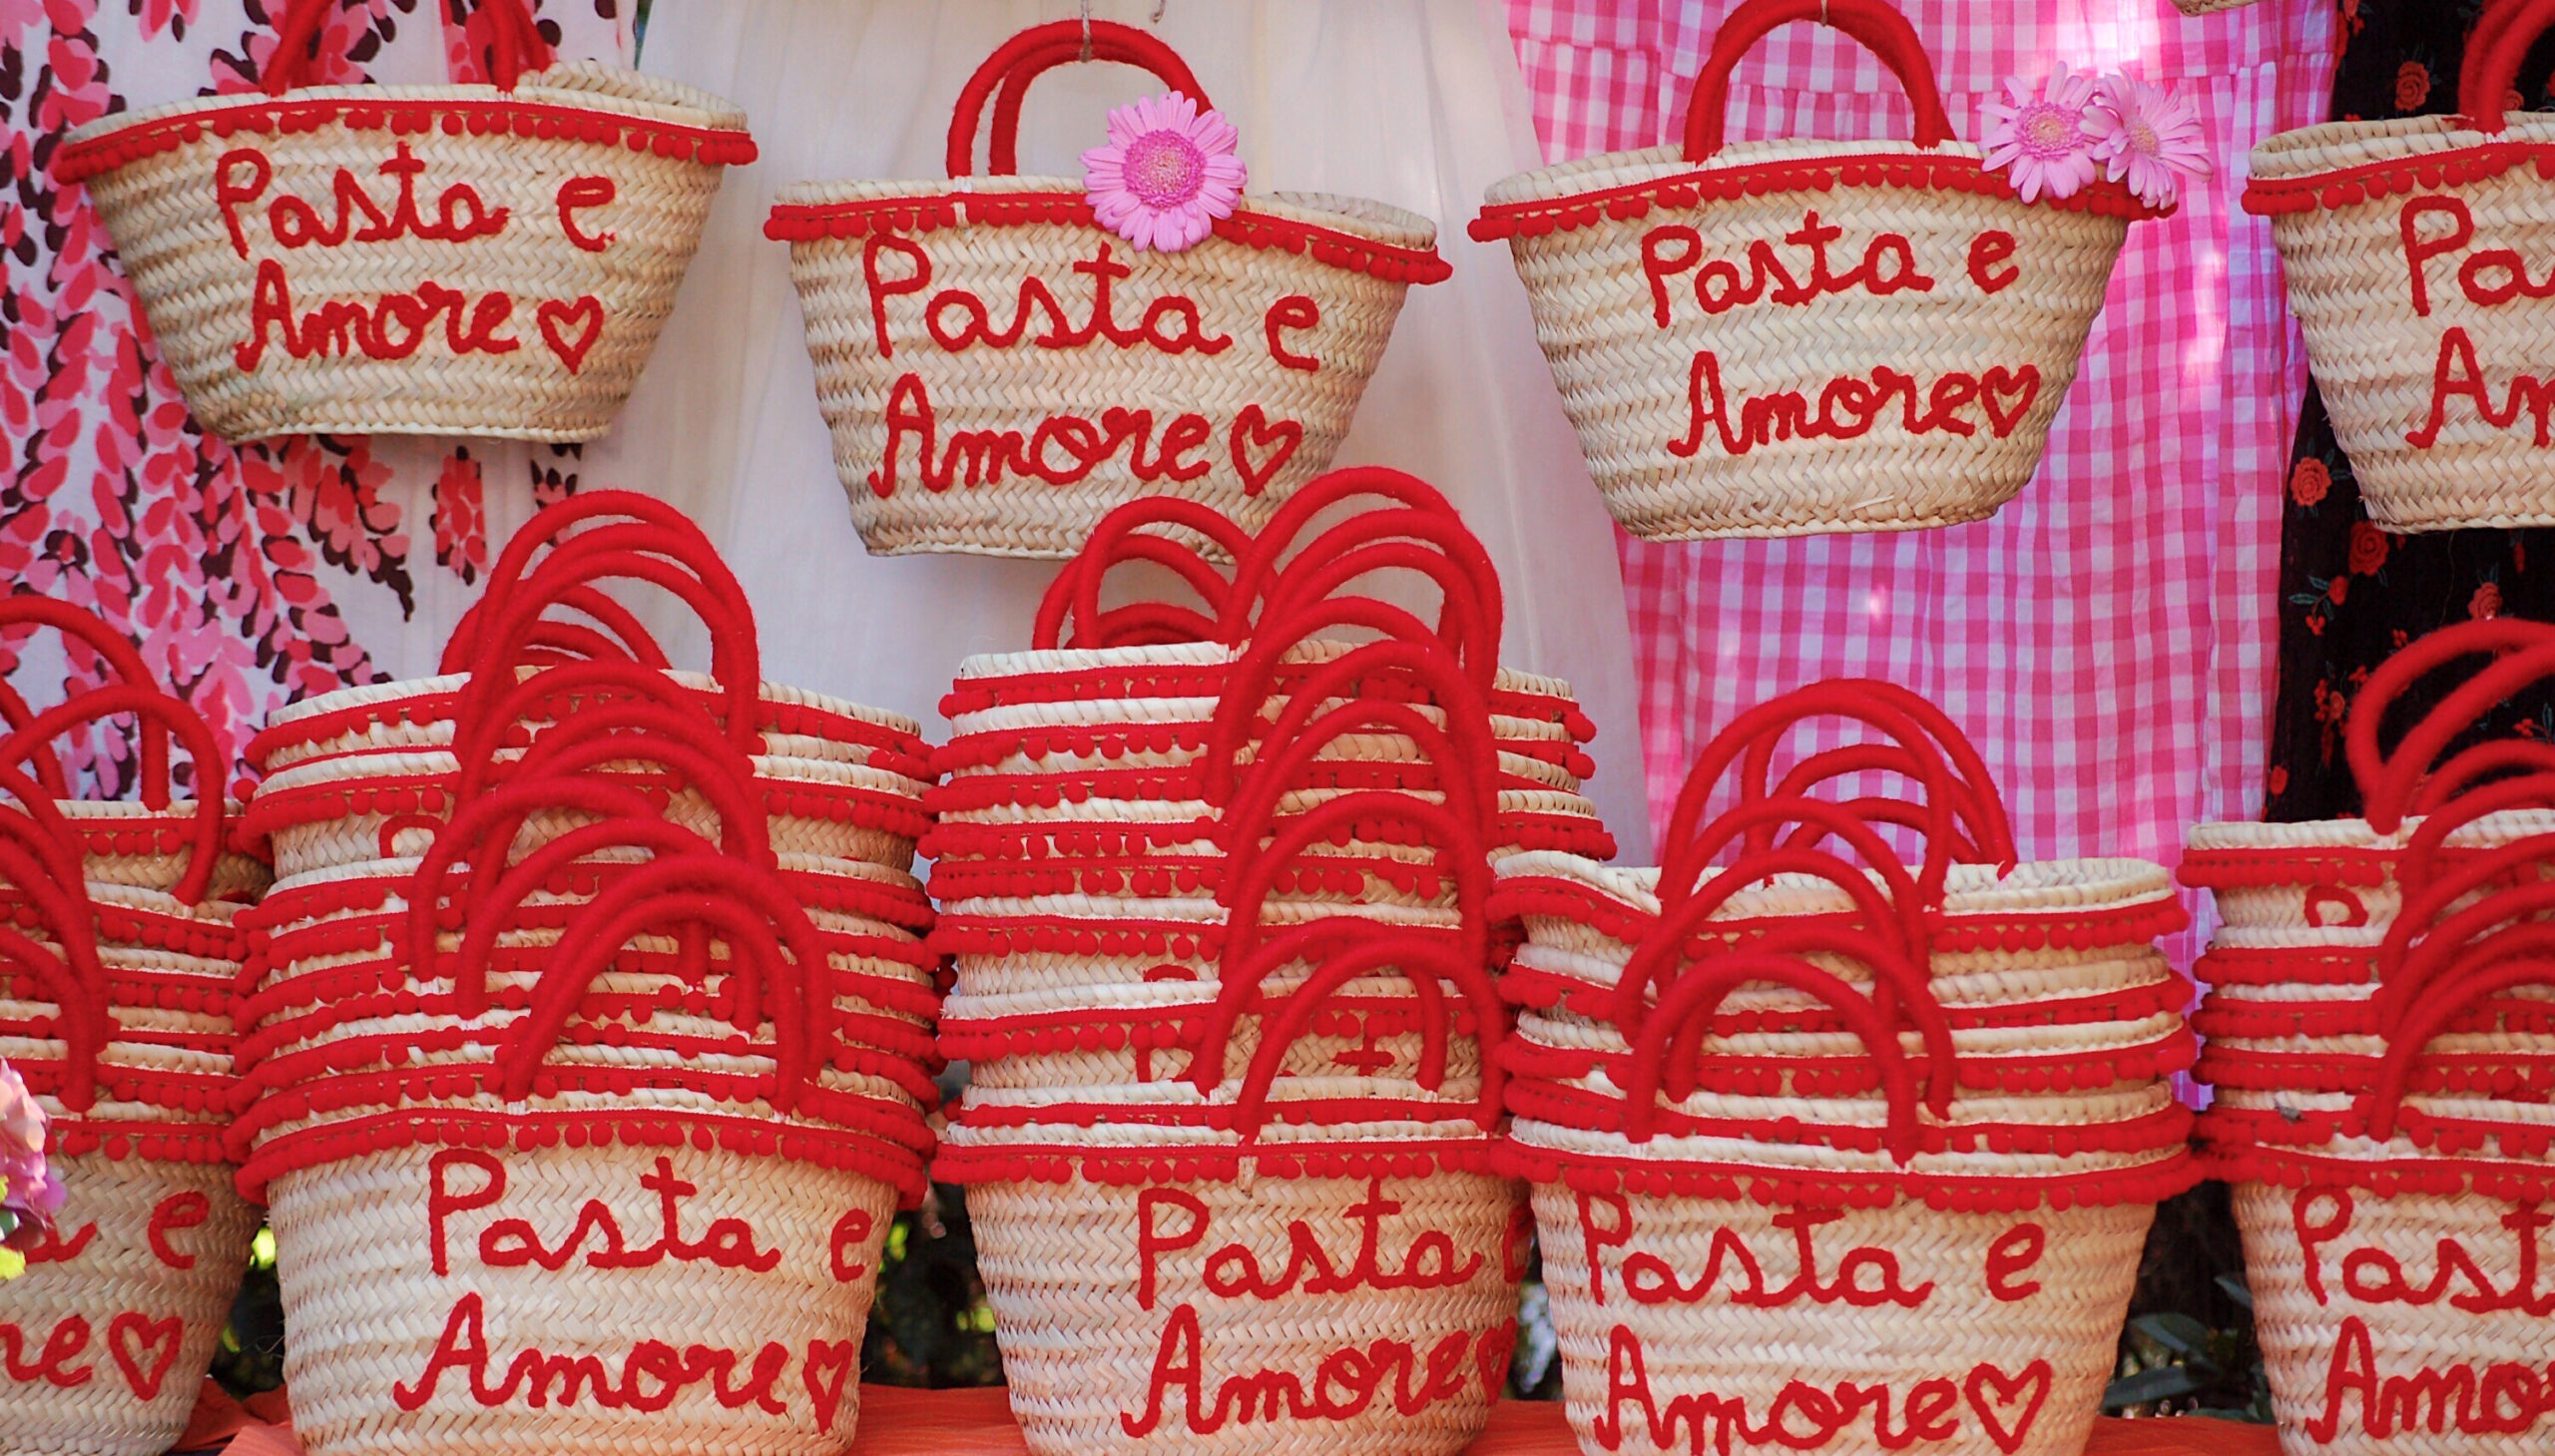 Personalized straw bags Pasta & Amore for a wedding in Italy by Italian Summers